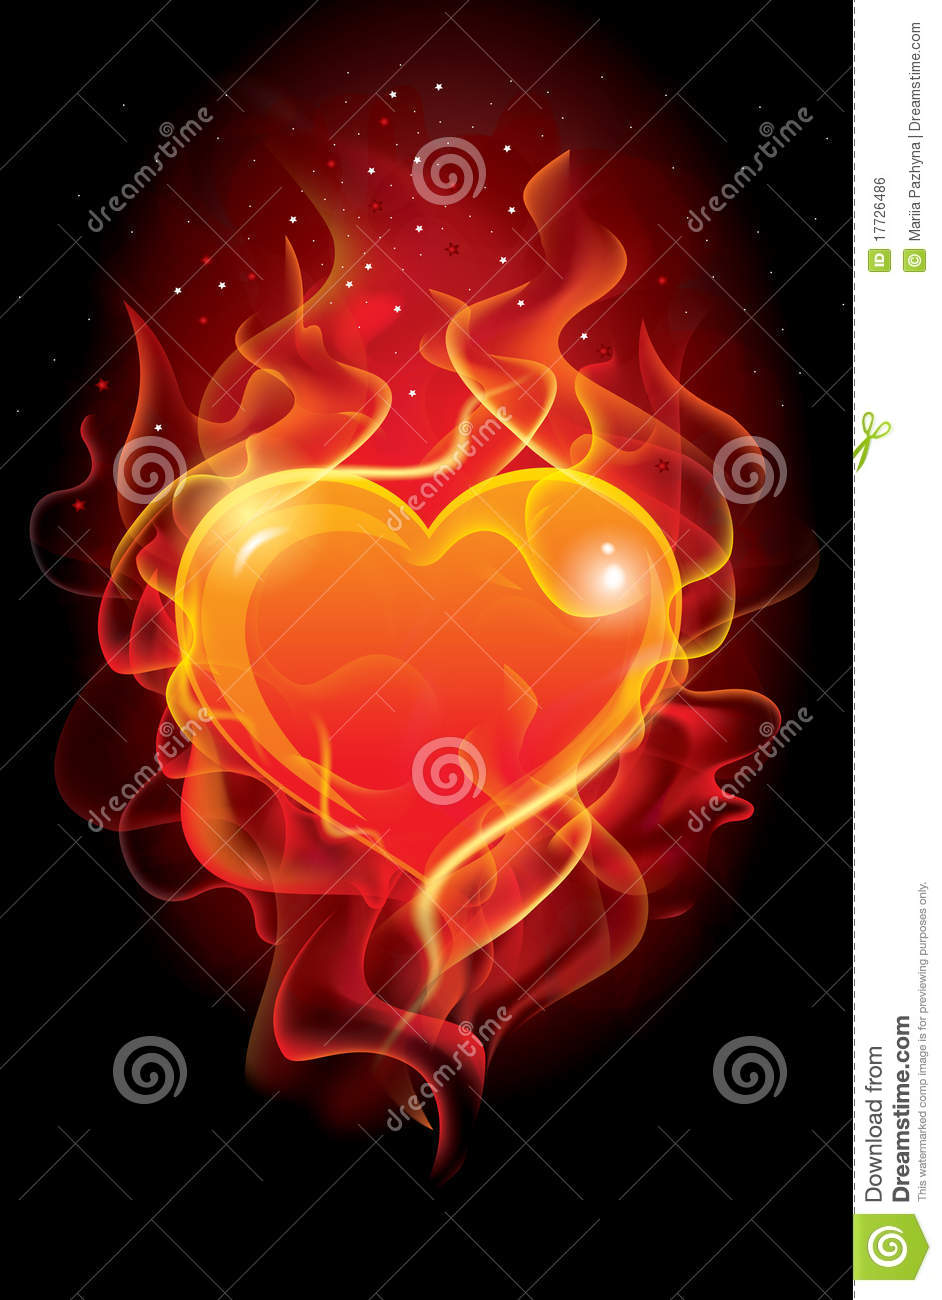 bd91838d3d87 Flaming heart stock vector. Illustration of flame